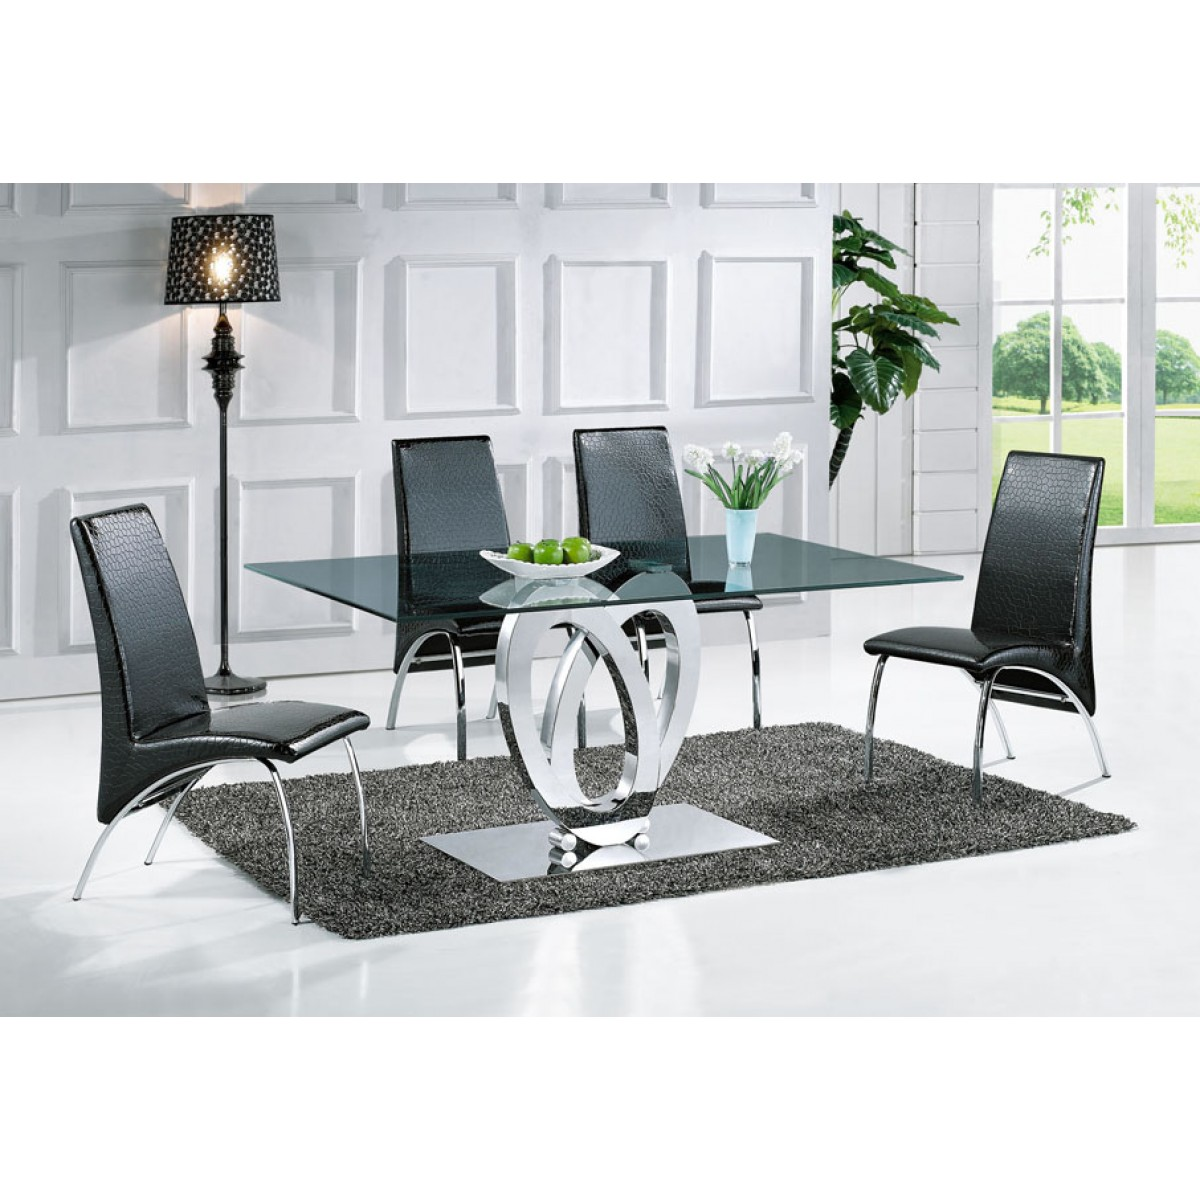 Table de salle manger design ellipse taille au choix tables de salle manger tables - Photo de table ...